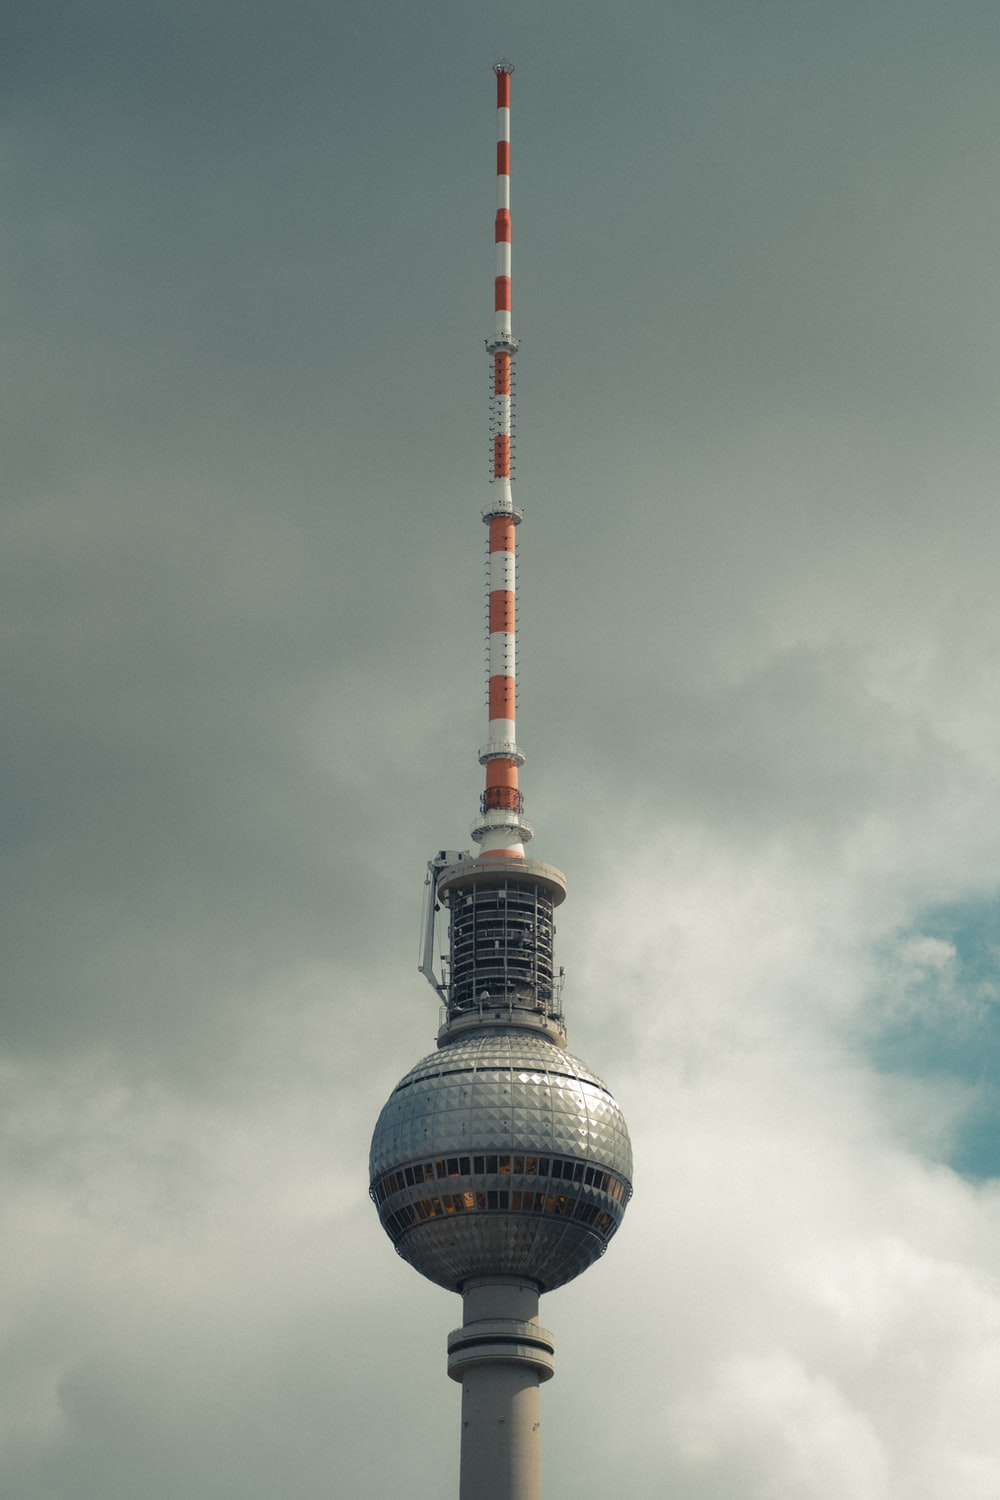 white and red tower under cloudy sky